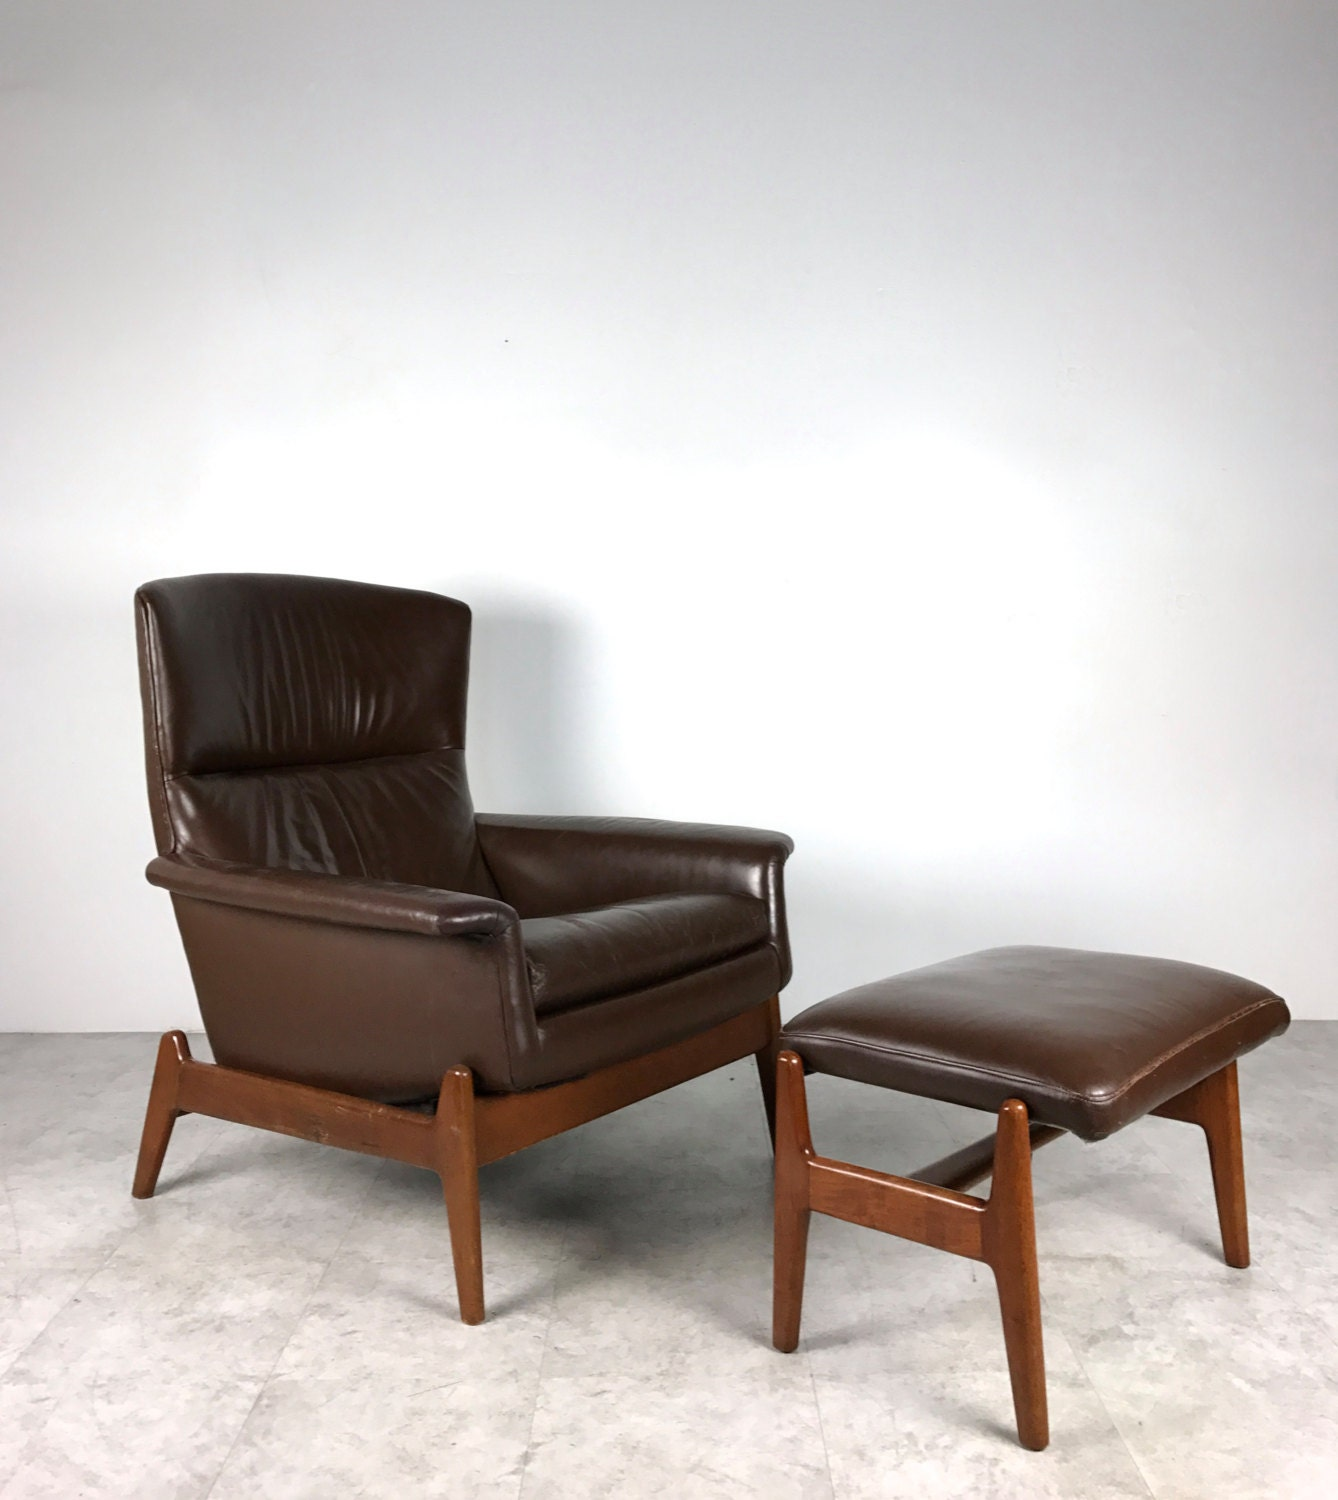 Vintage Mid Century Danish Modern Teak Dux Brown Leather Lounge